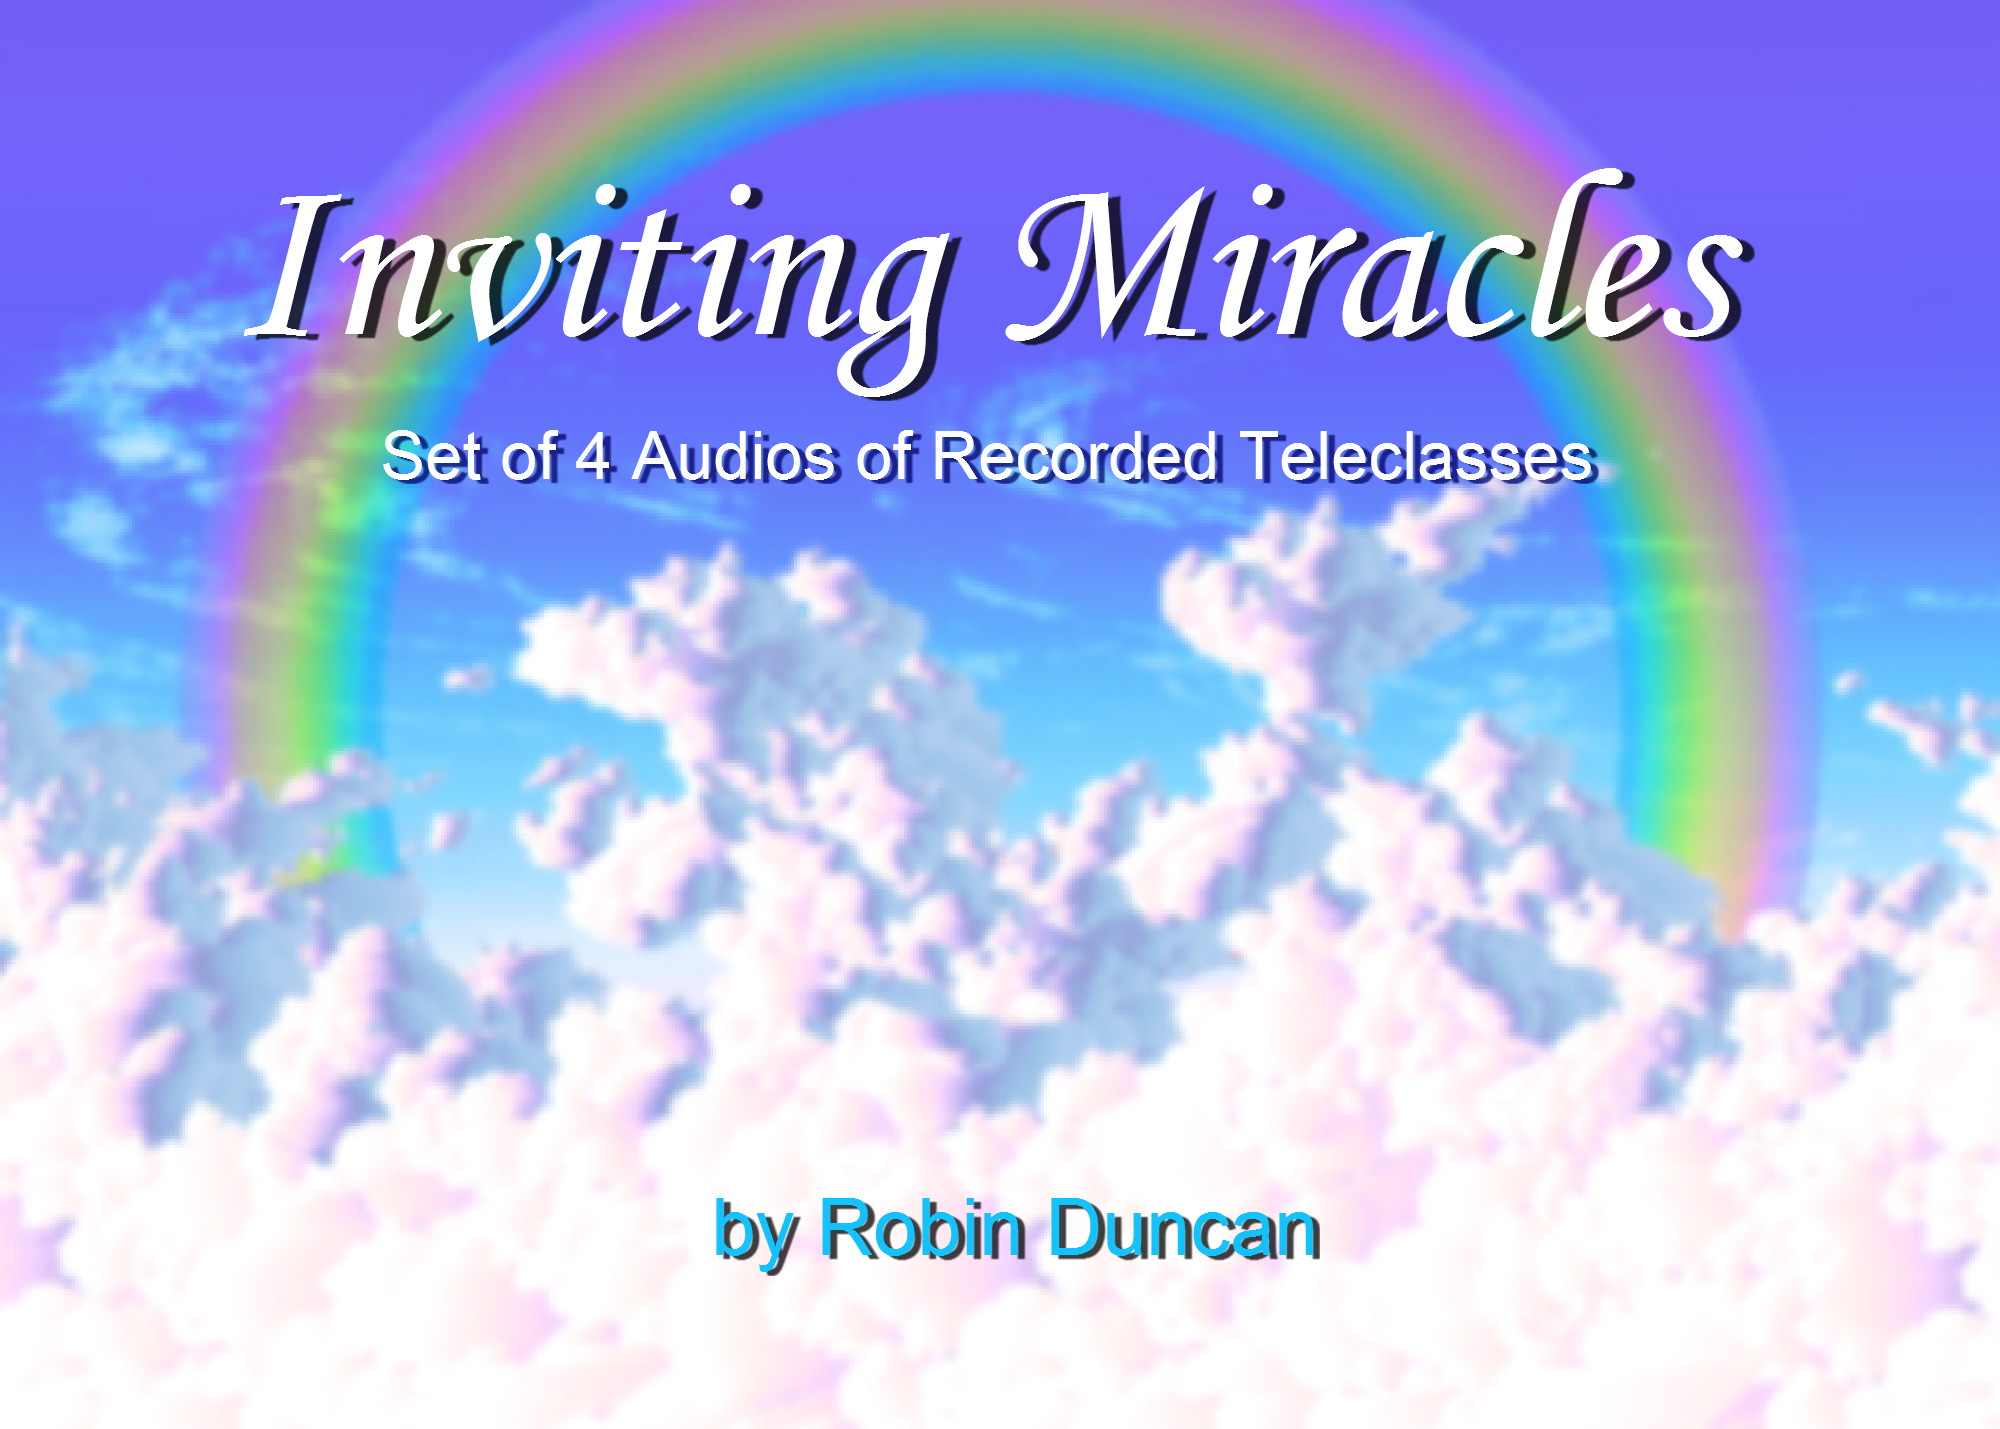 Inviting Miracles - Set of 4 Audios Miracles in Prosperity, Manifesting Wealth, Help with Money, Prayer about Money, Guided Meditation on Money